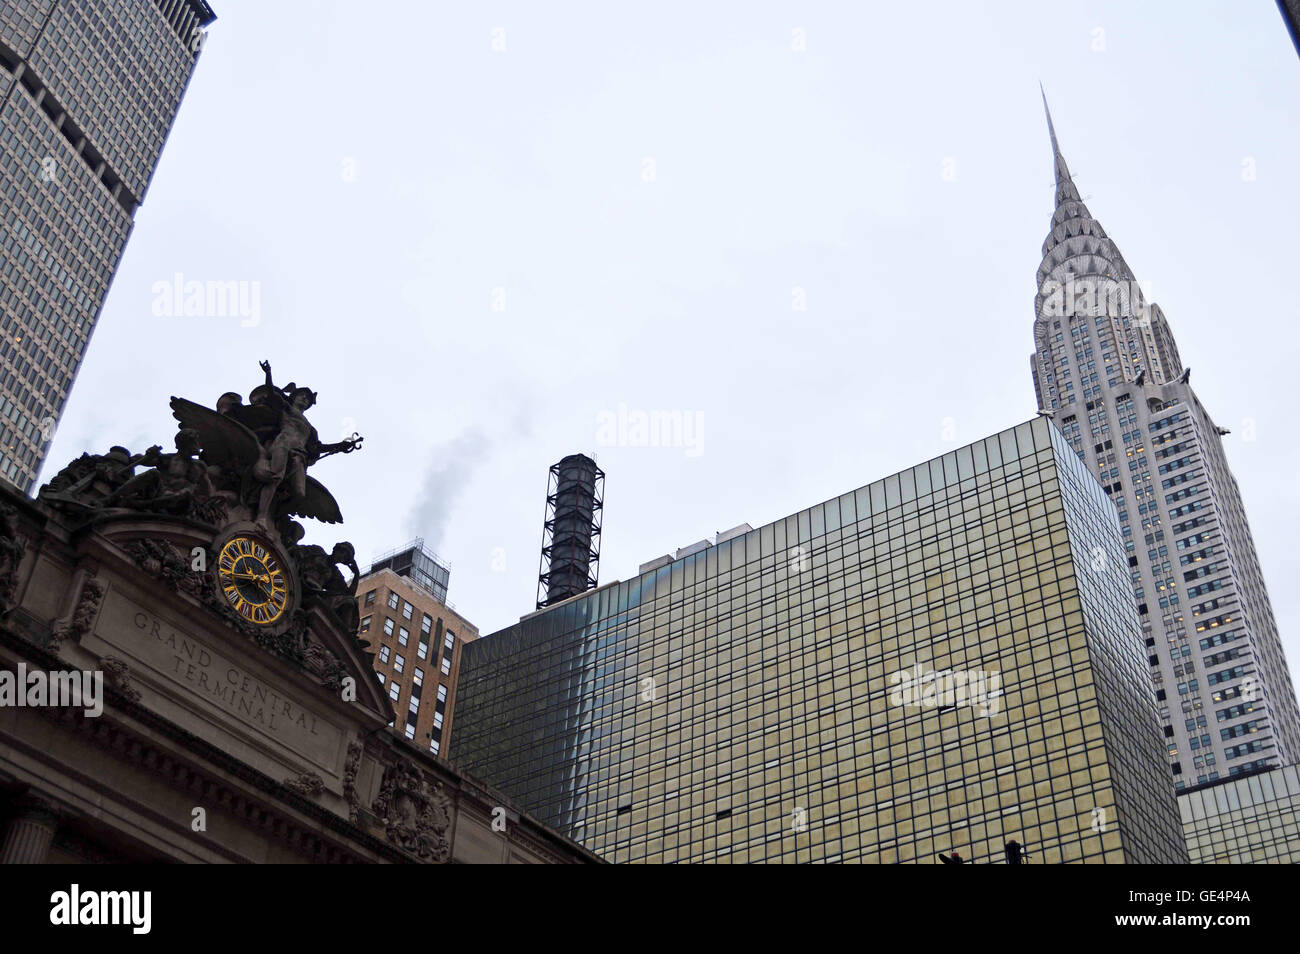 Grand Central Terminus and the Chrysler Building, New York City, New York, USA - Stock Image